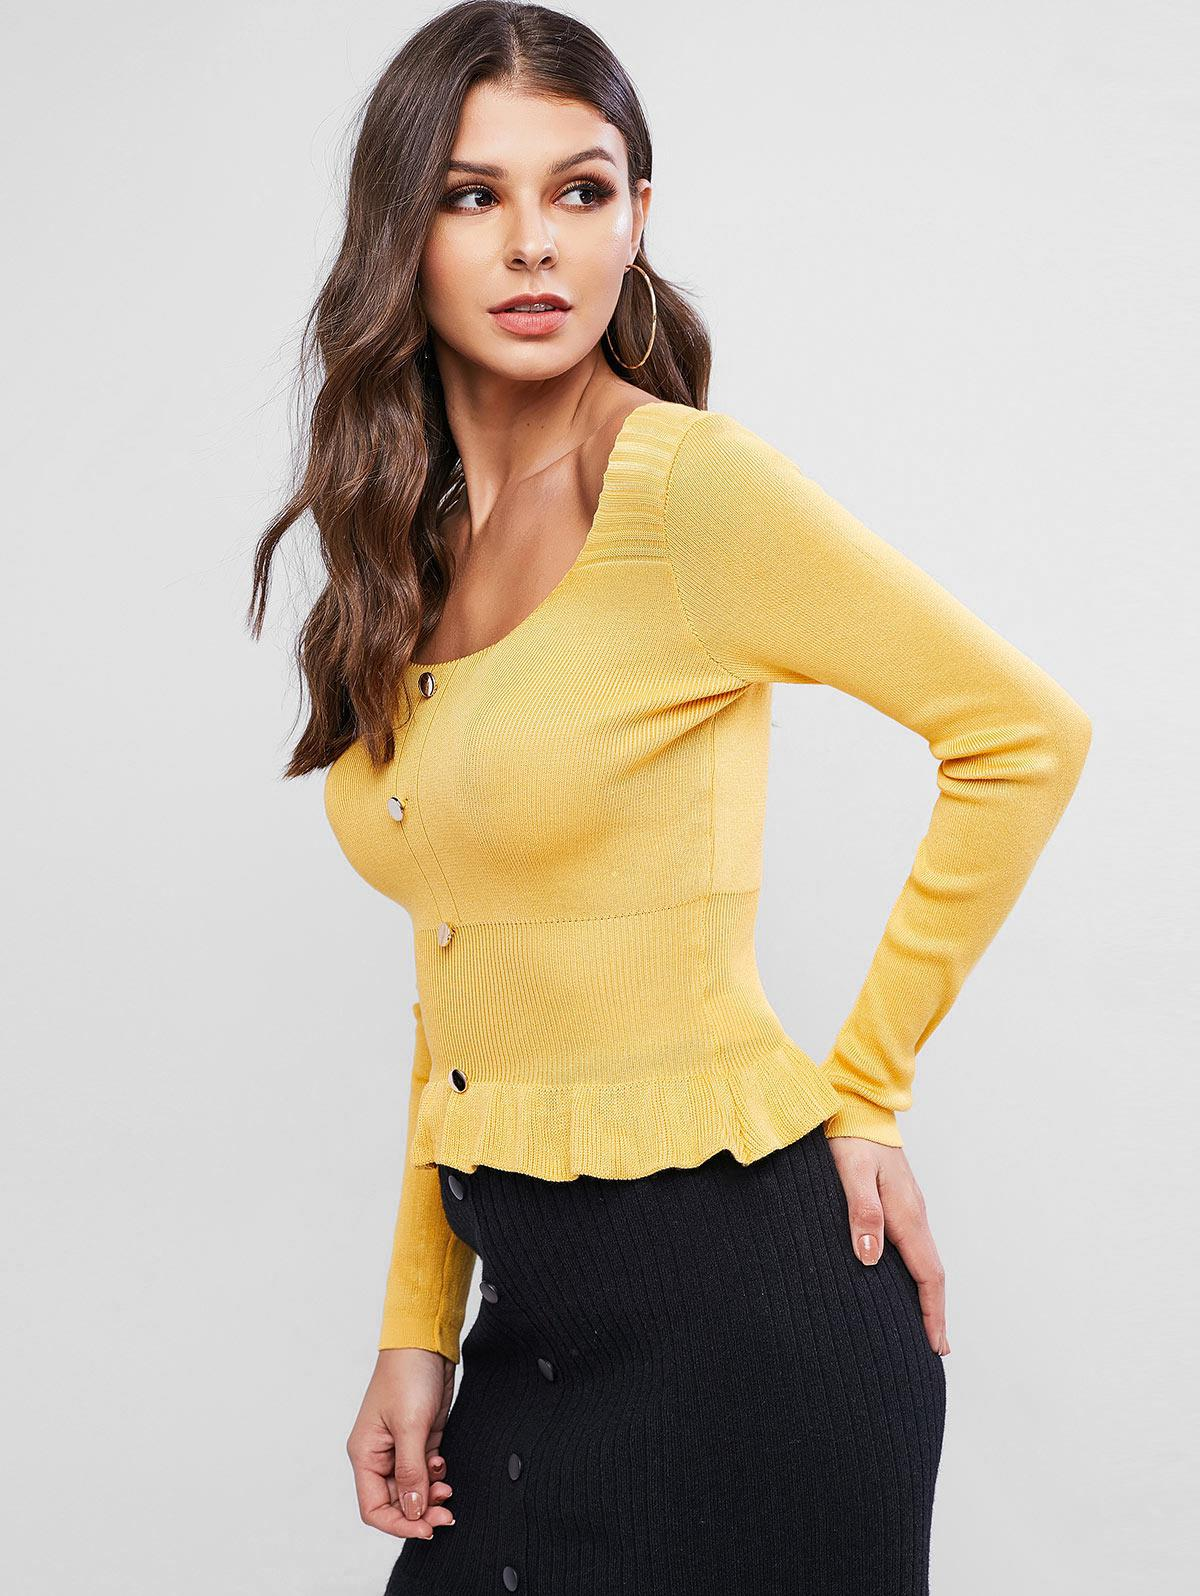 Scoop Neck Button Embellished Peplum Sweater